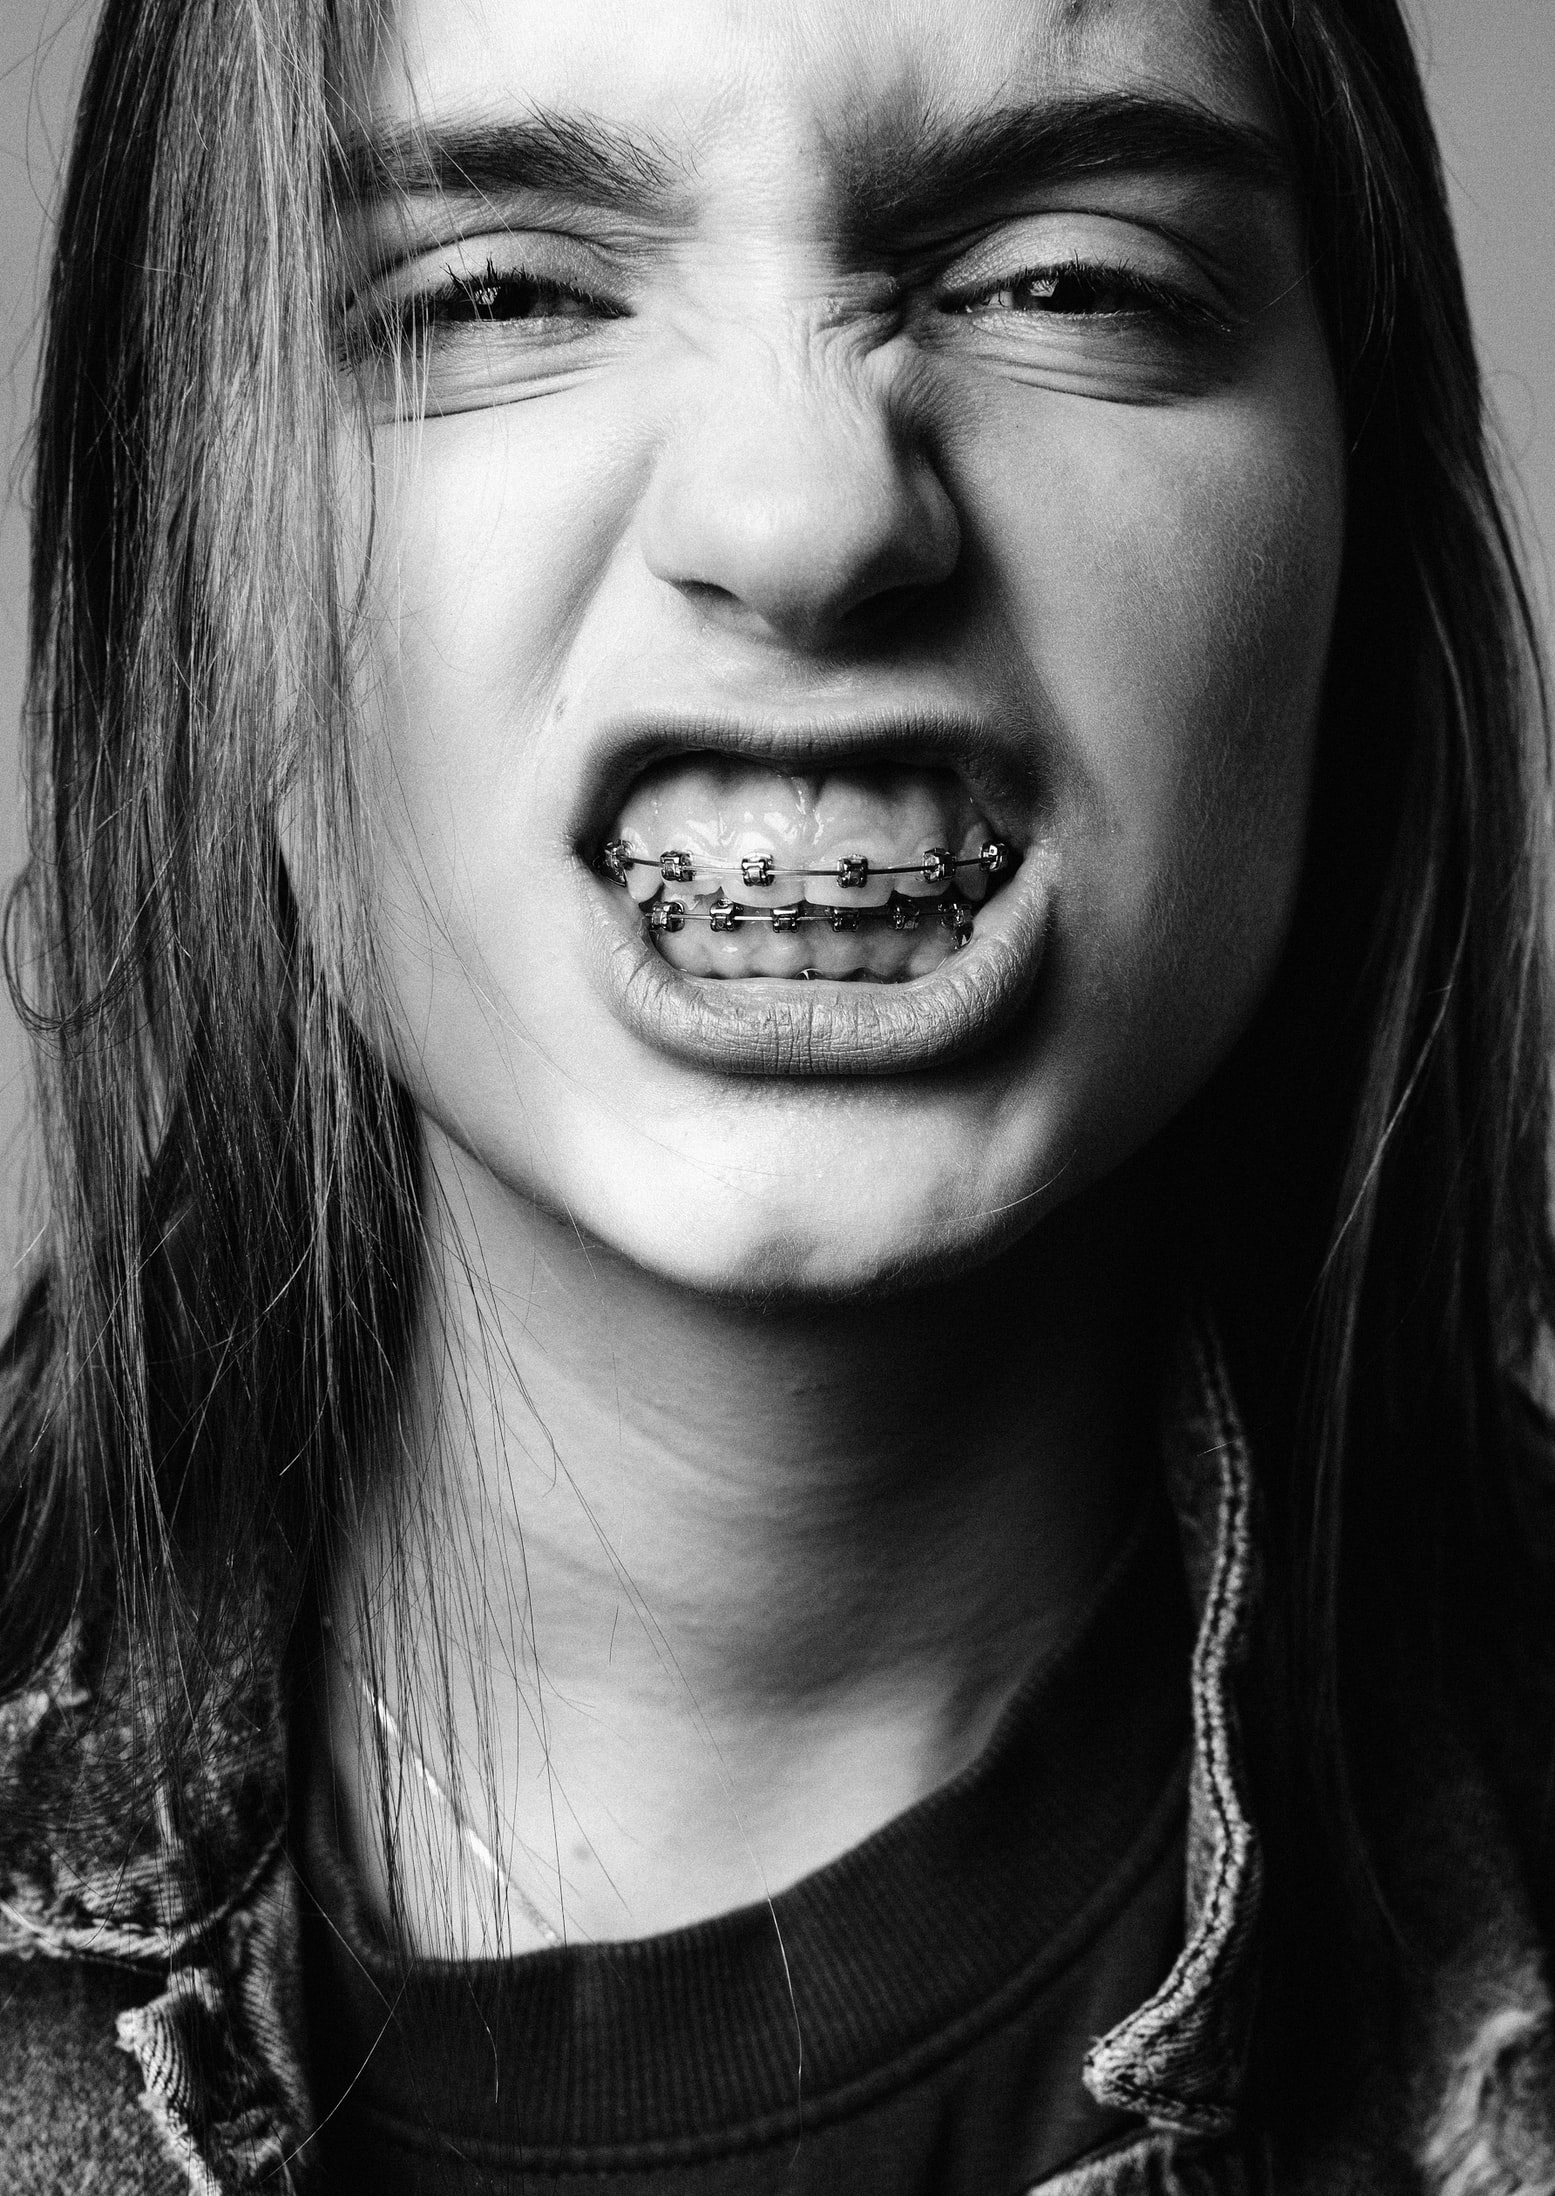 woman with braces